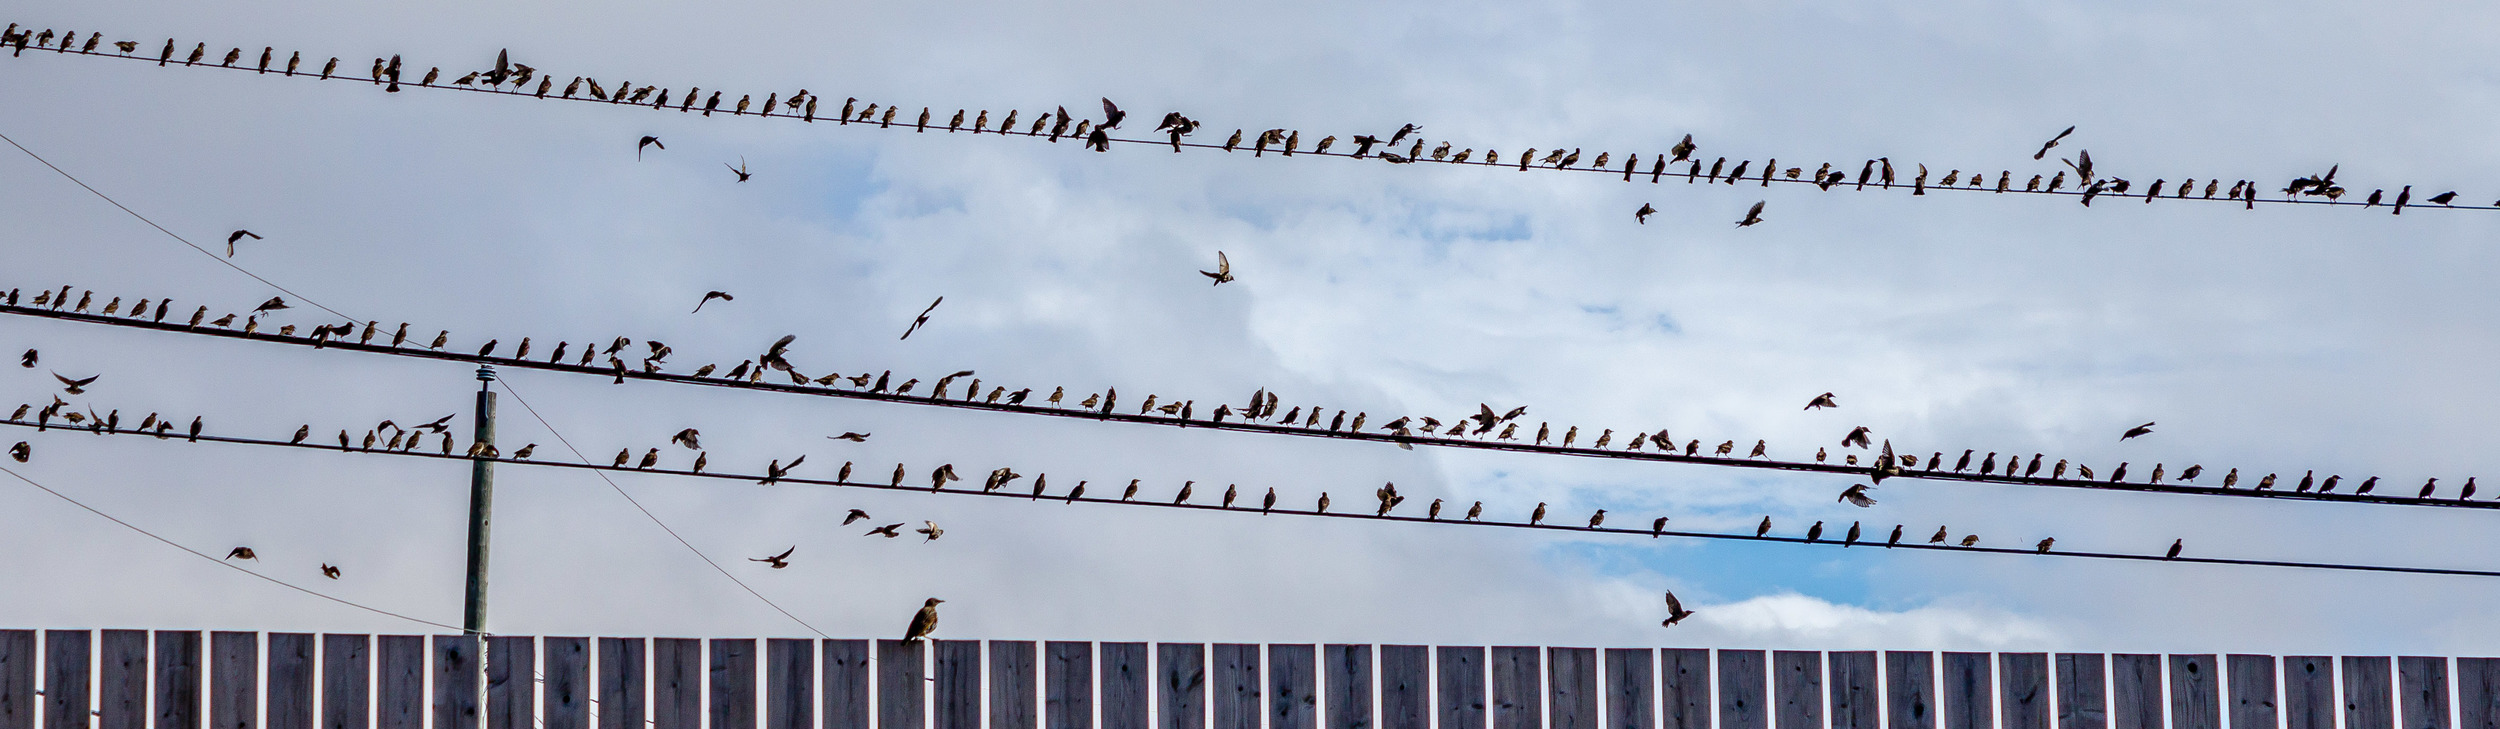 Lots of birds on the wire